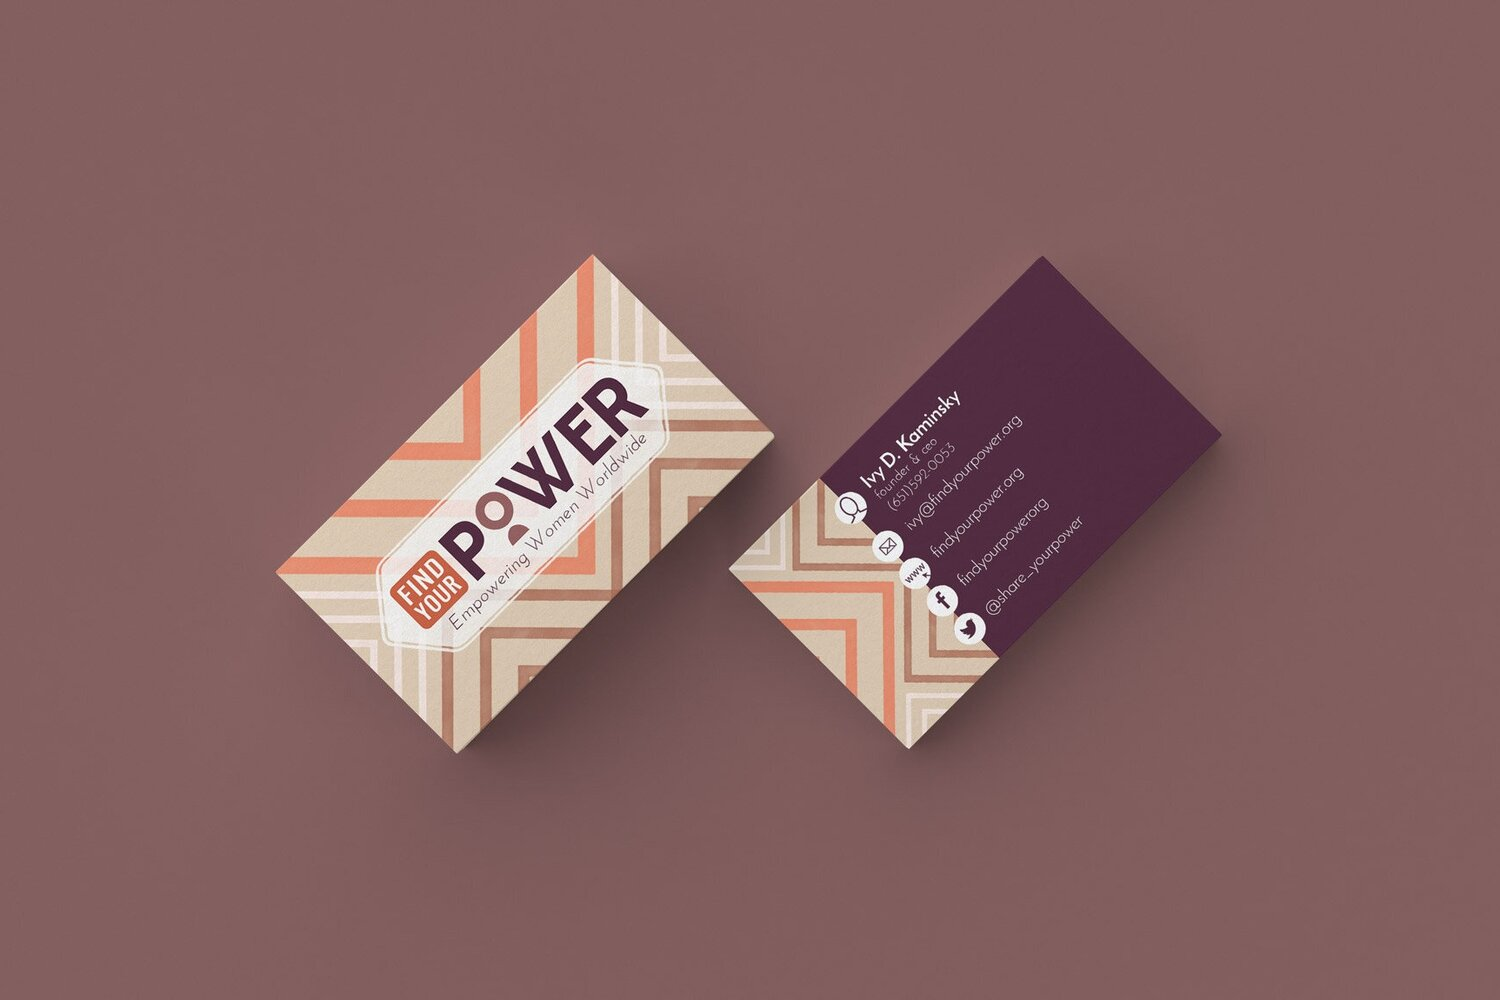 Business_Cards_Mockup_by_Bulbfish_10.jpg